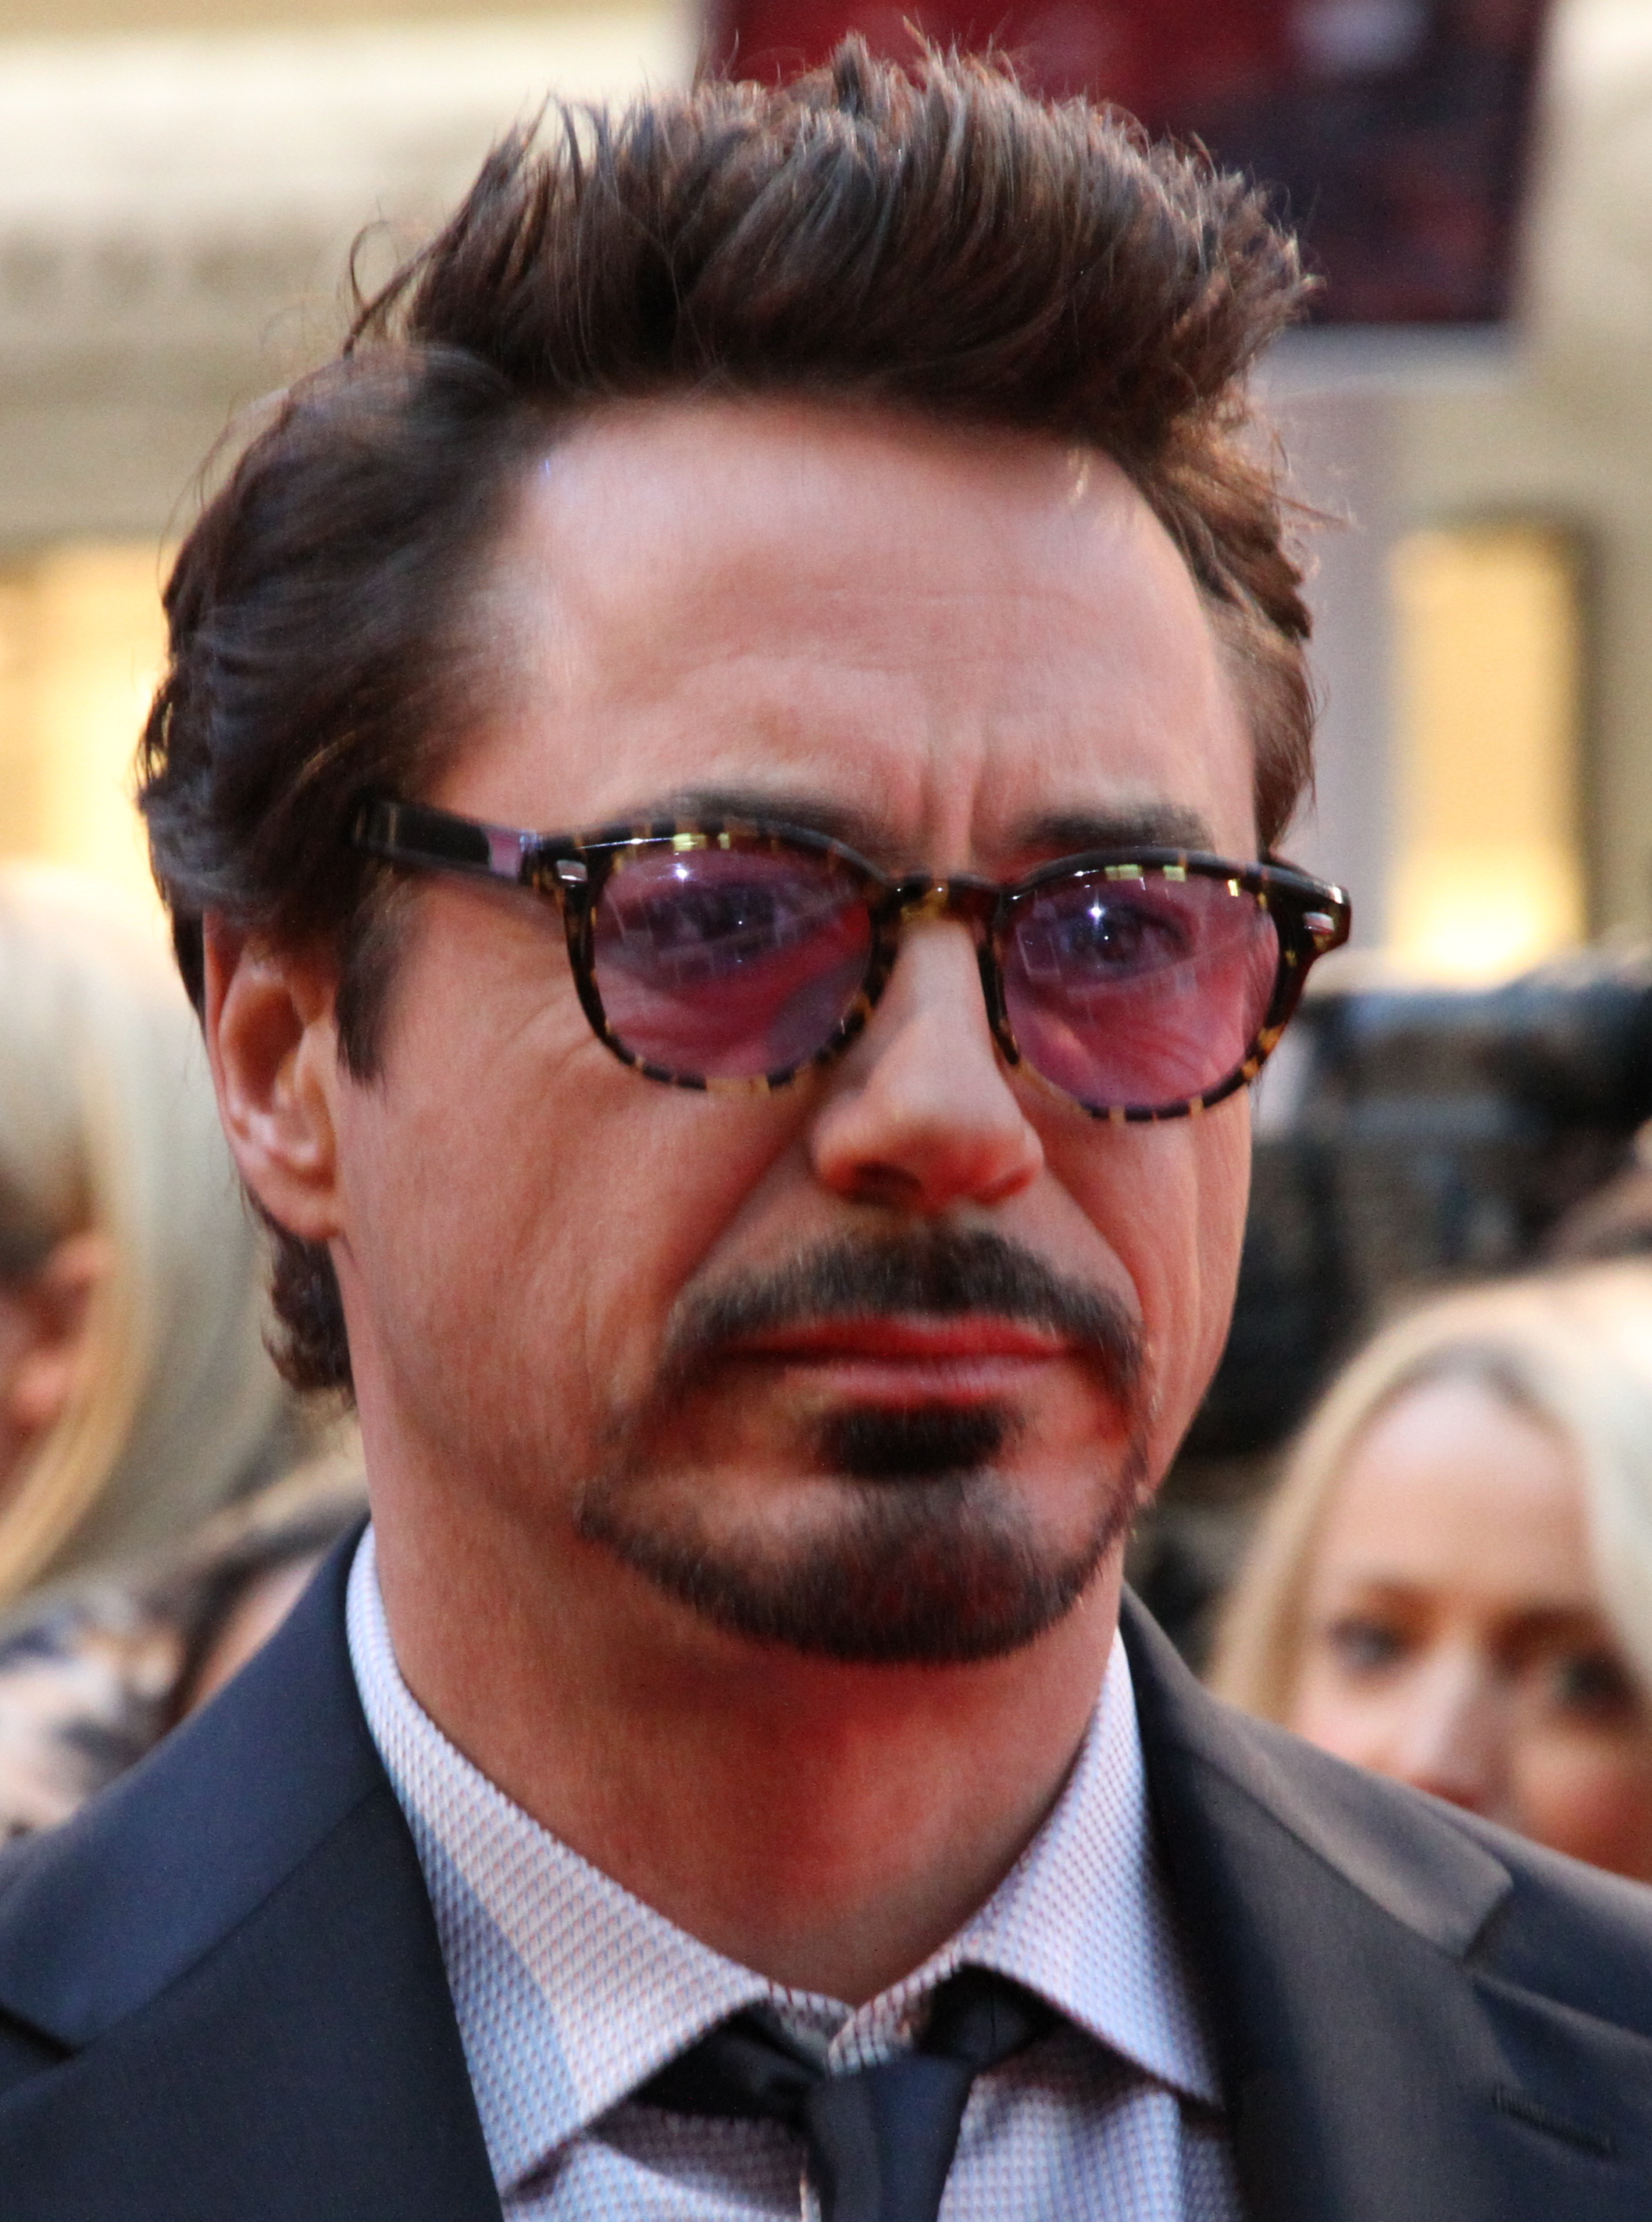 Robert_Downey,_Jr._2012.jpg